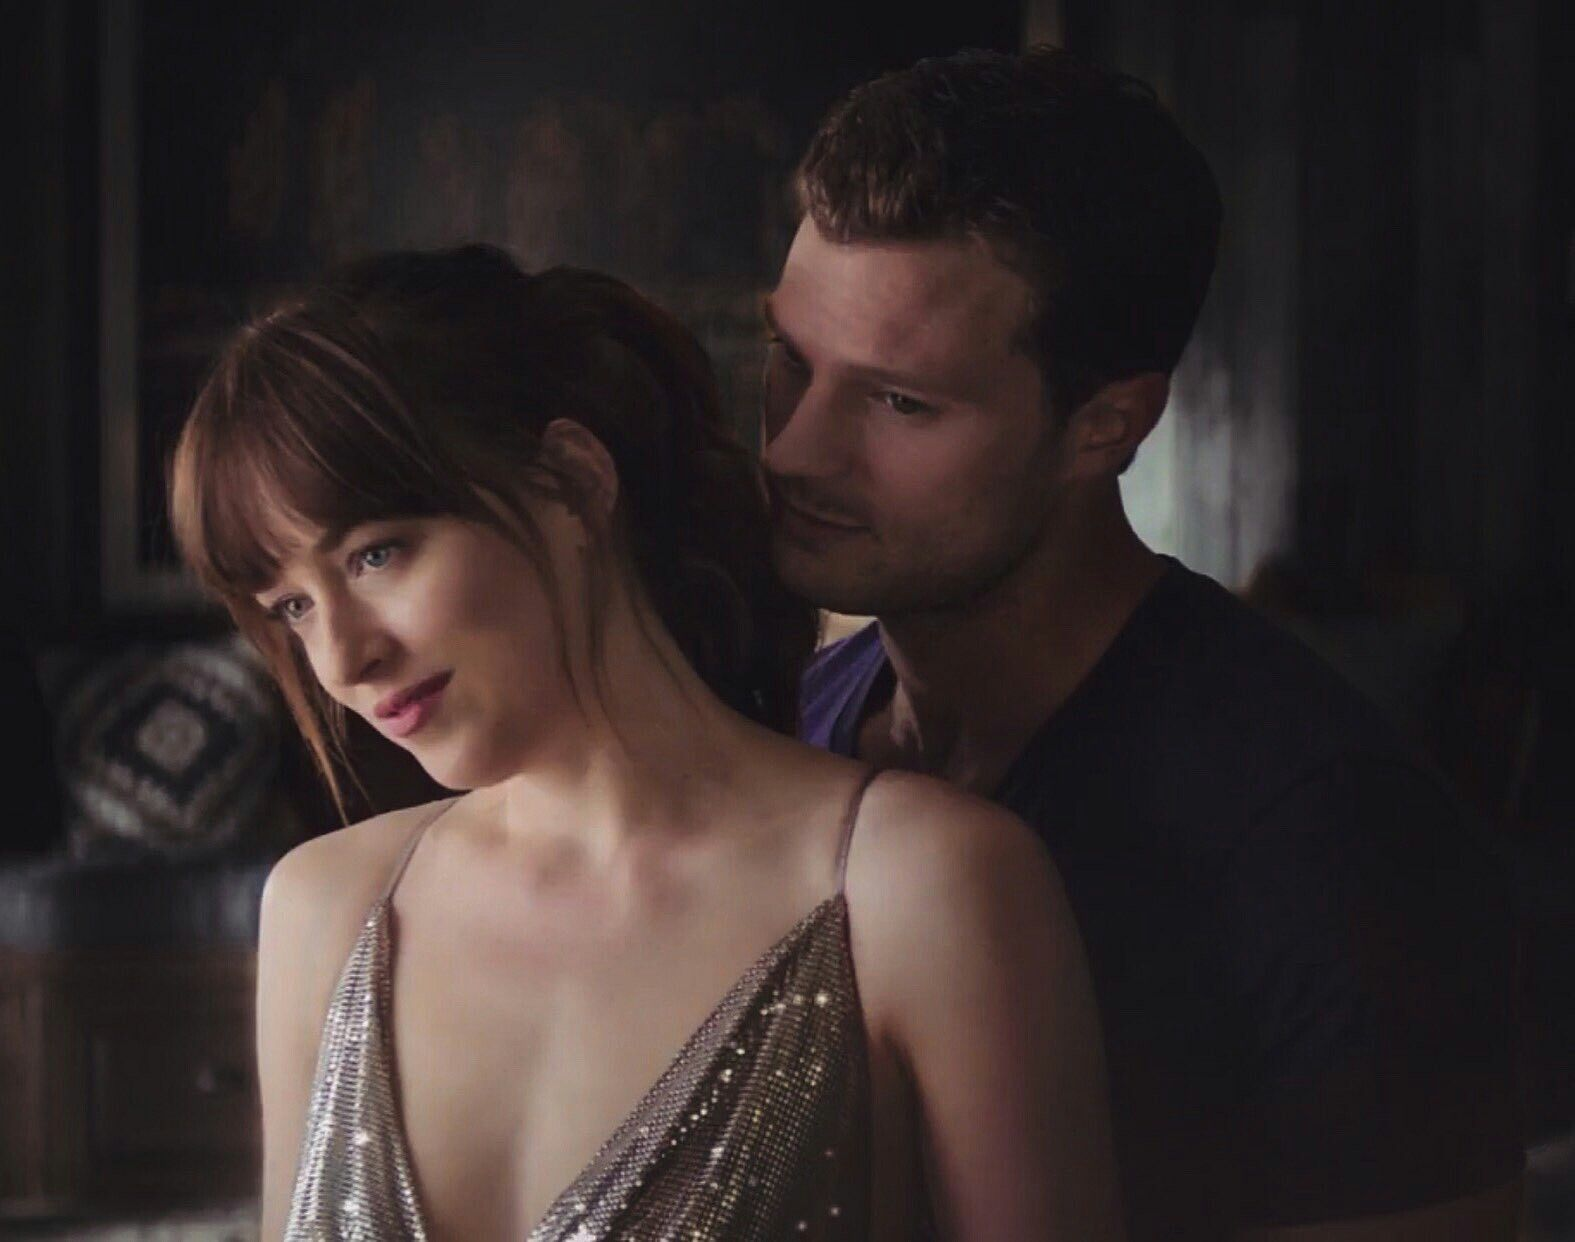 New Still 50 Days Until Fifty Shades Freed Funny Fifty Shades Used The Aspen Shoot And The Dakot Cincuenta Sombras De Grey 50 Sombras Liberadas Sombras De Grey